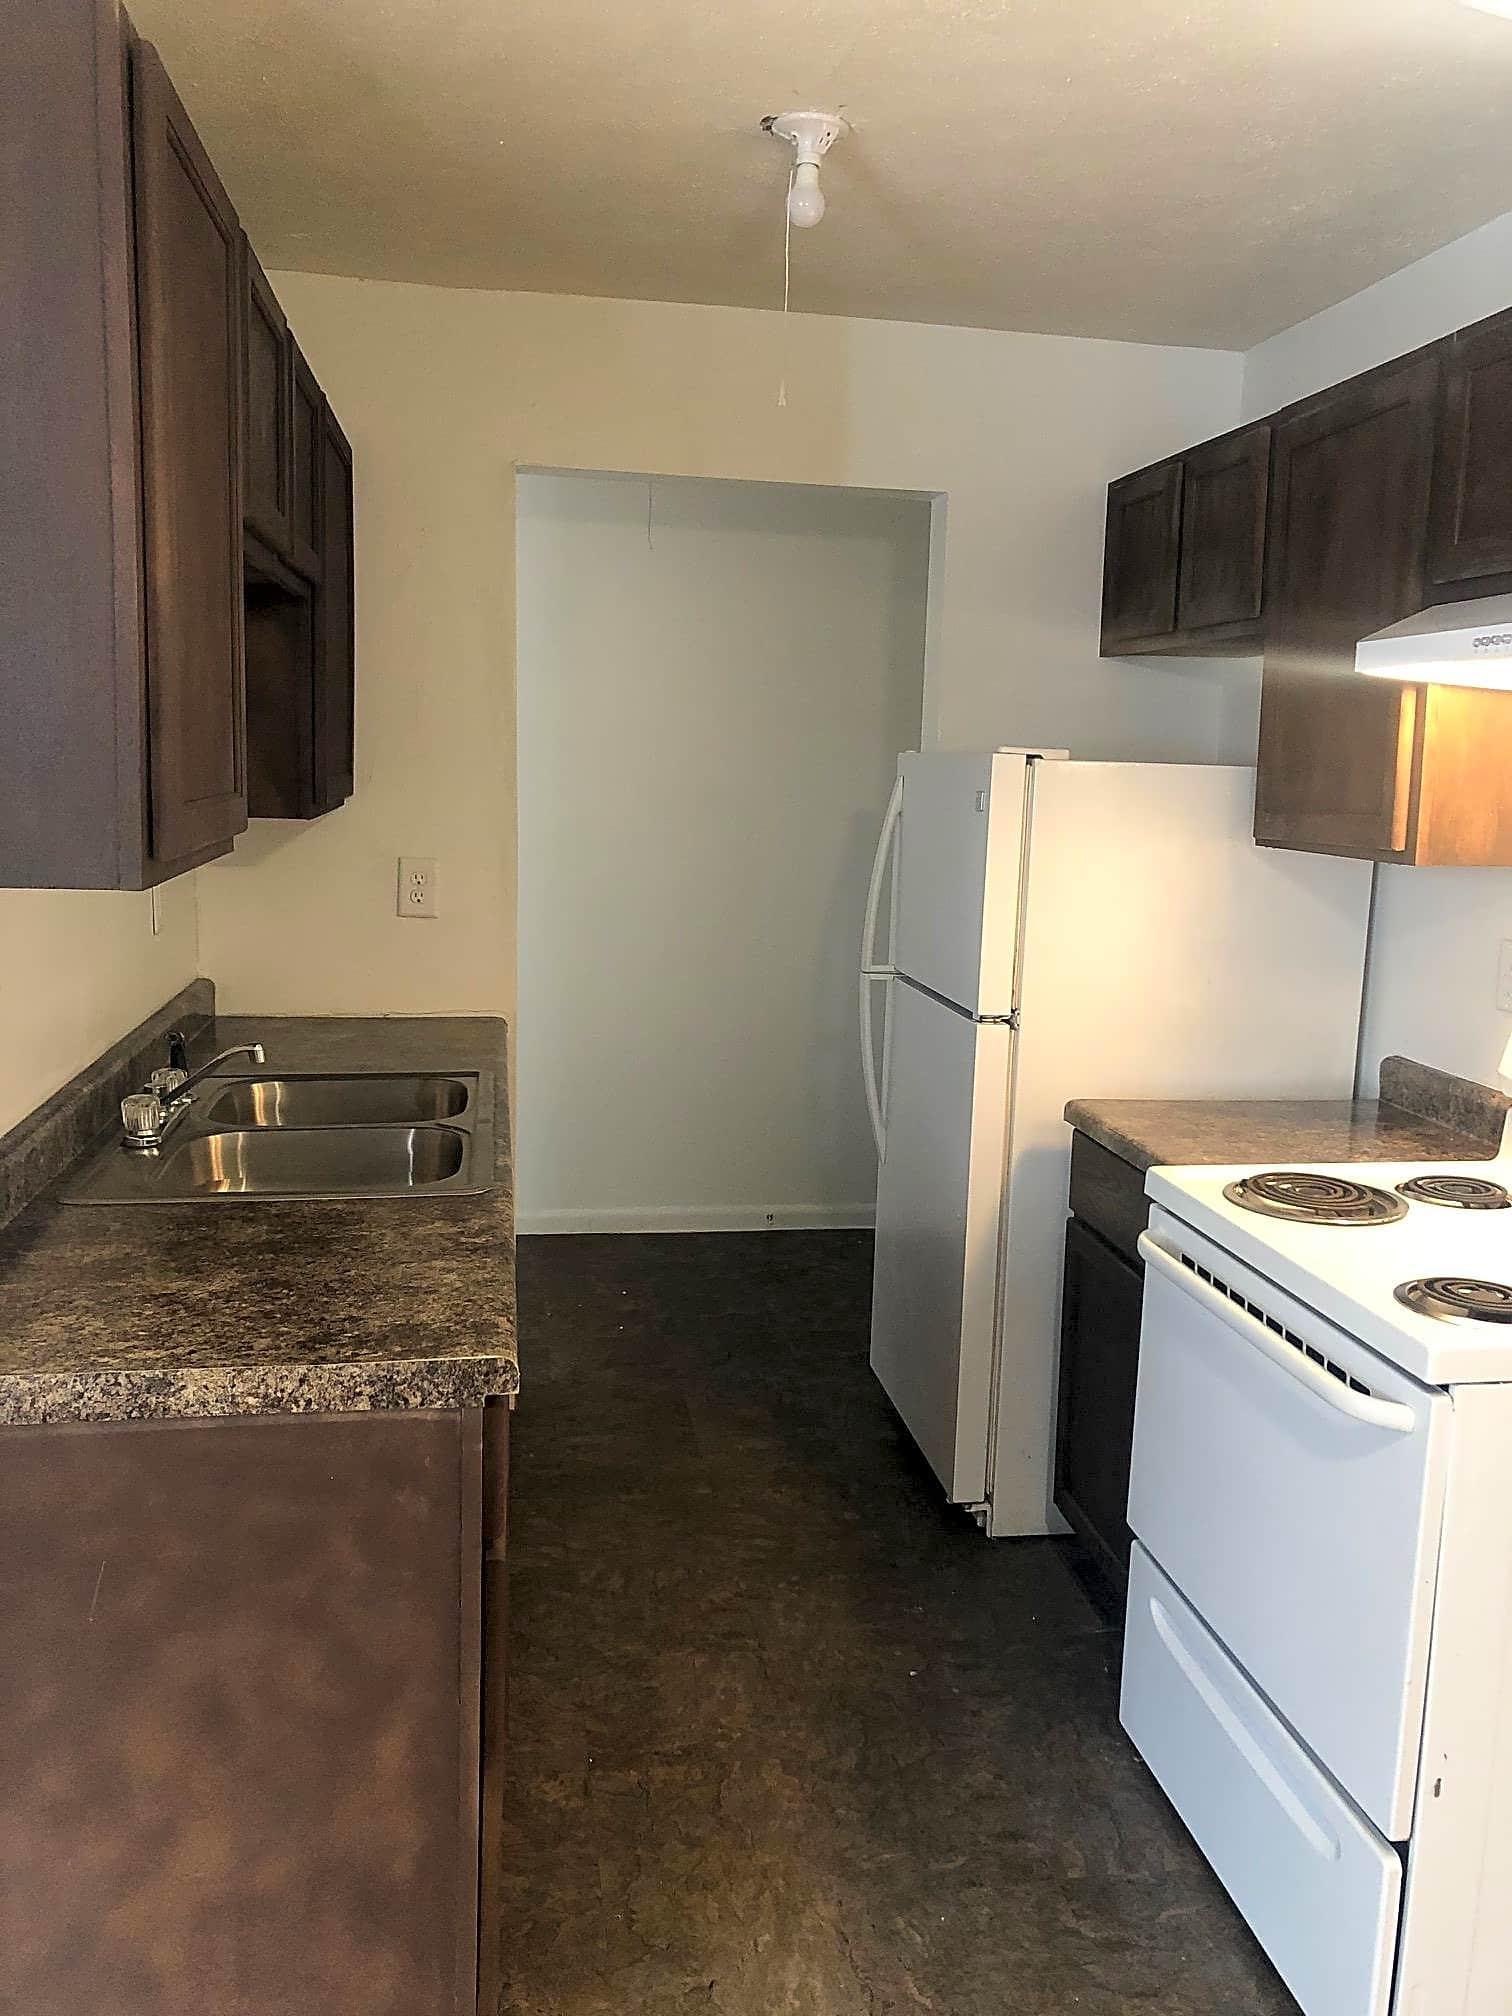 Apartments Near Earlham Genesis Apartments for Earlham College Students in Richmond, IN